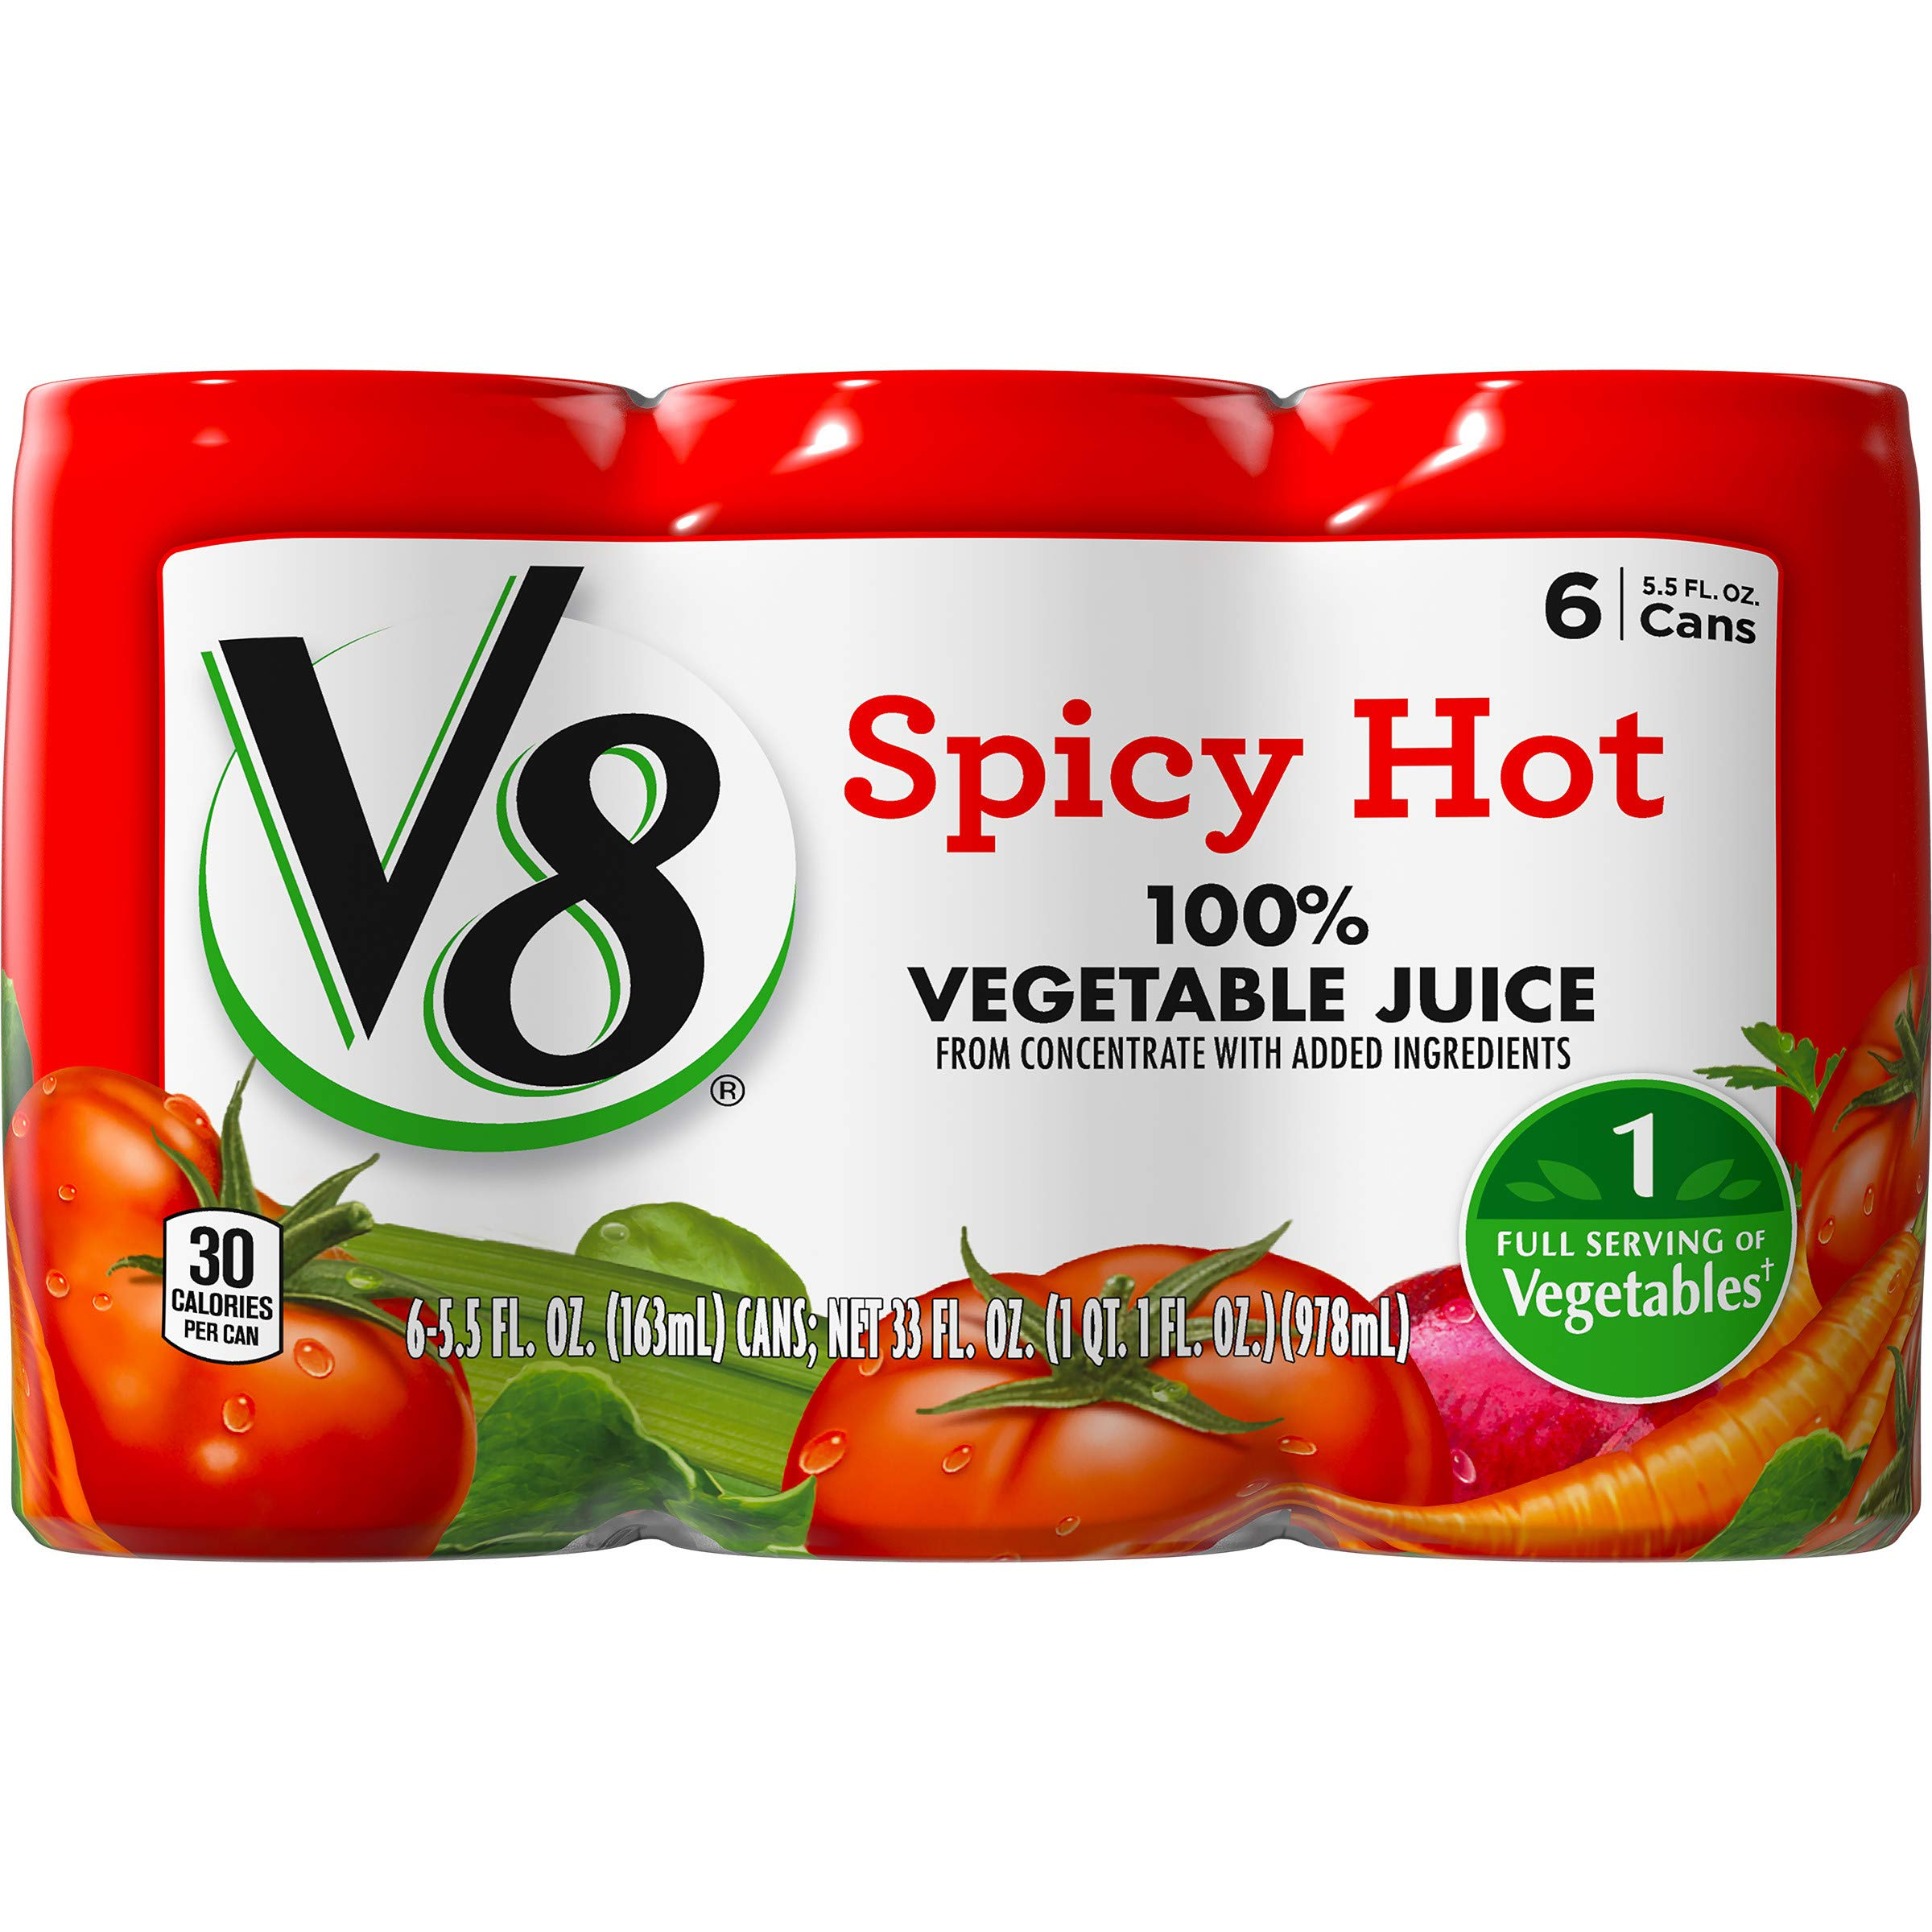 V8 Spicy Hot 100% Vegetable Juice, 5.5oz. Can (8 Packs of 6, Total of 48) by V8